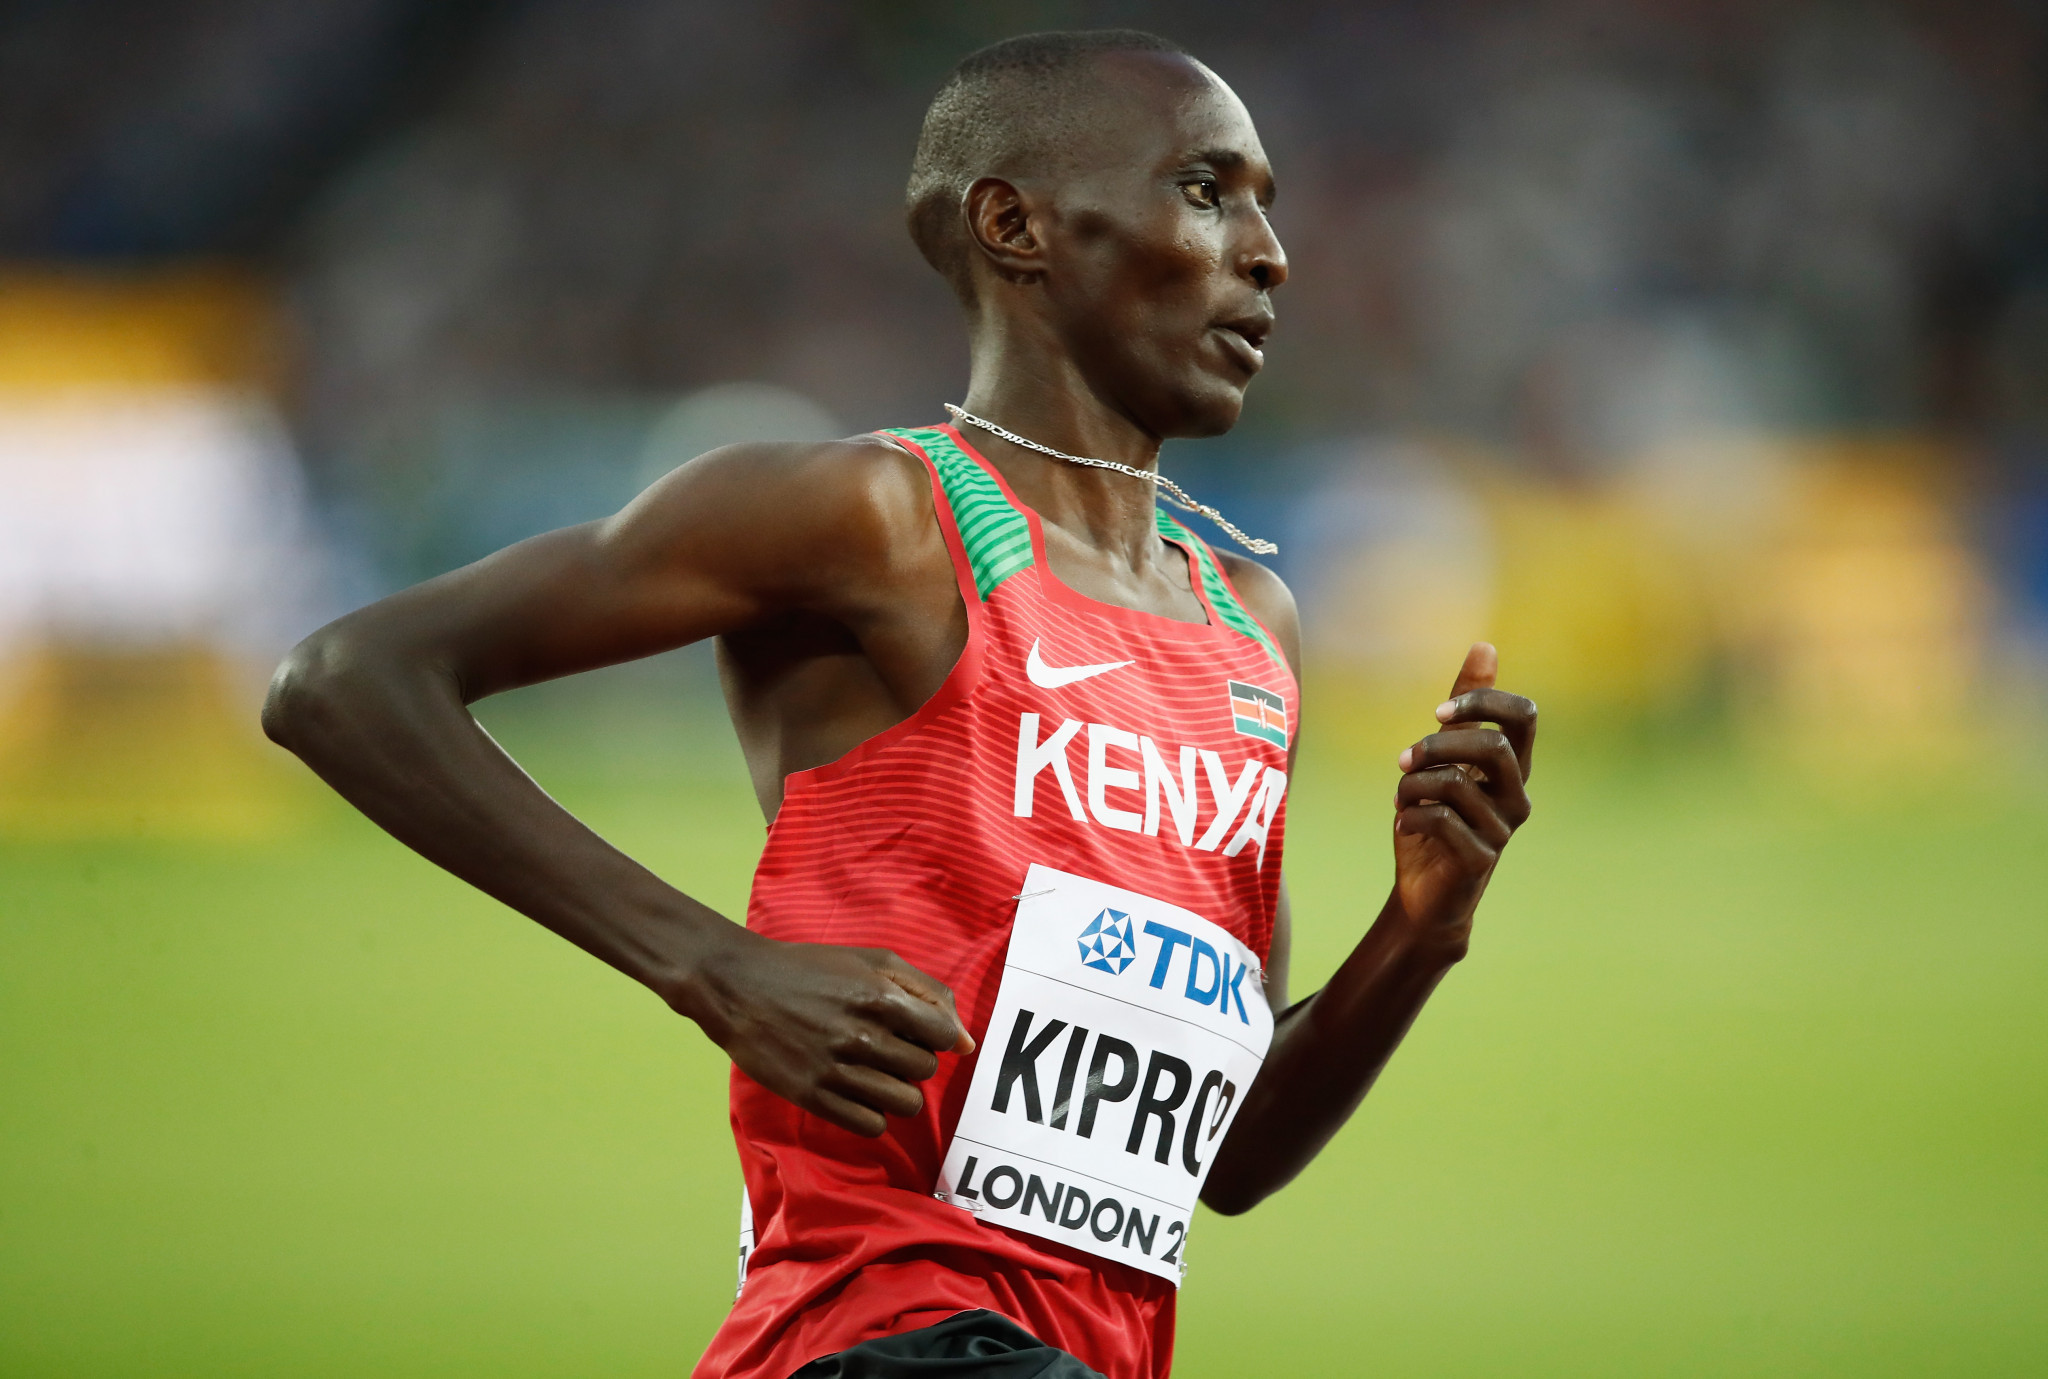 Asbel Kiprop is one of numerous Kenyan stars to have been embroiled in doping controversies in recent years ©Getty Images